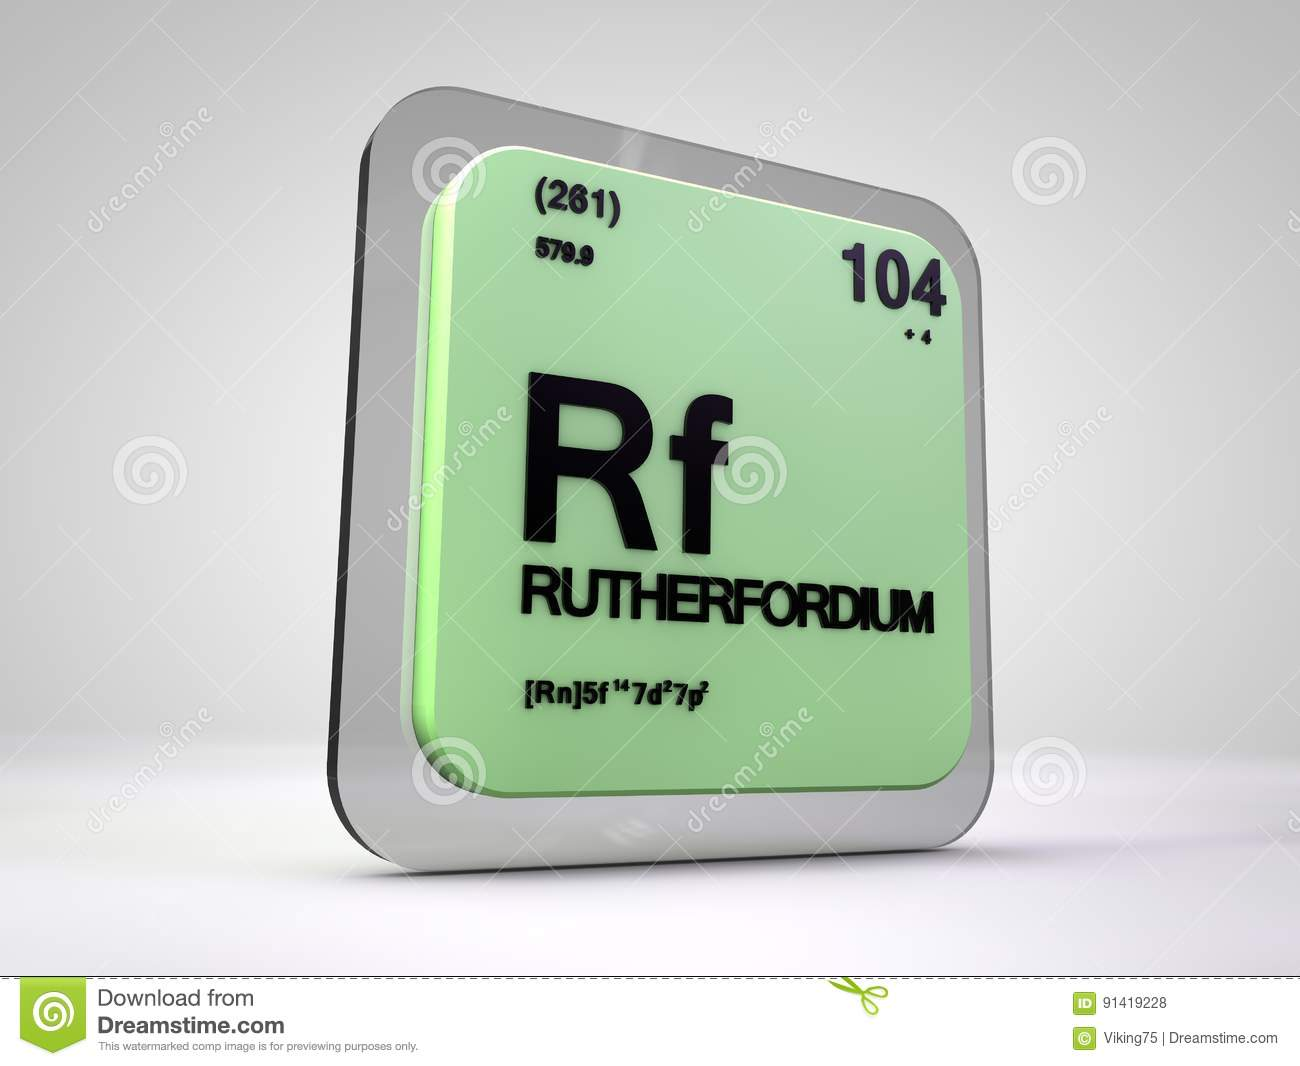 Rutherfordium rf chemical element periodic table stock royalty free illustration download rutherfordium rf chemical element periodic table gamestrikefo Image collections